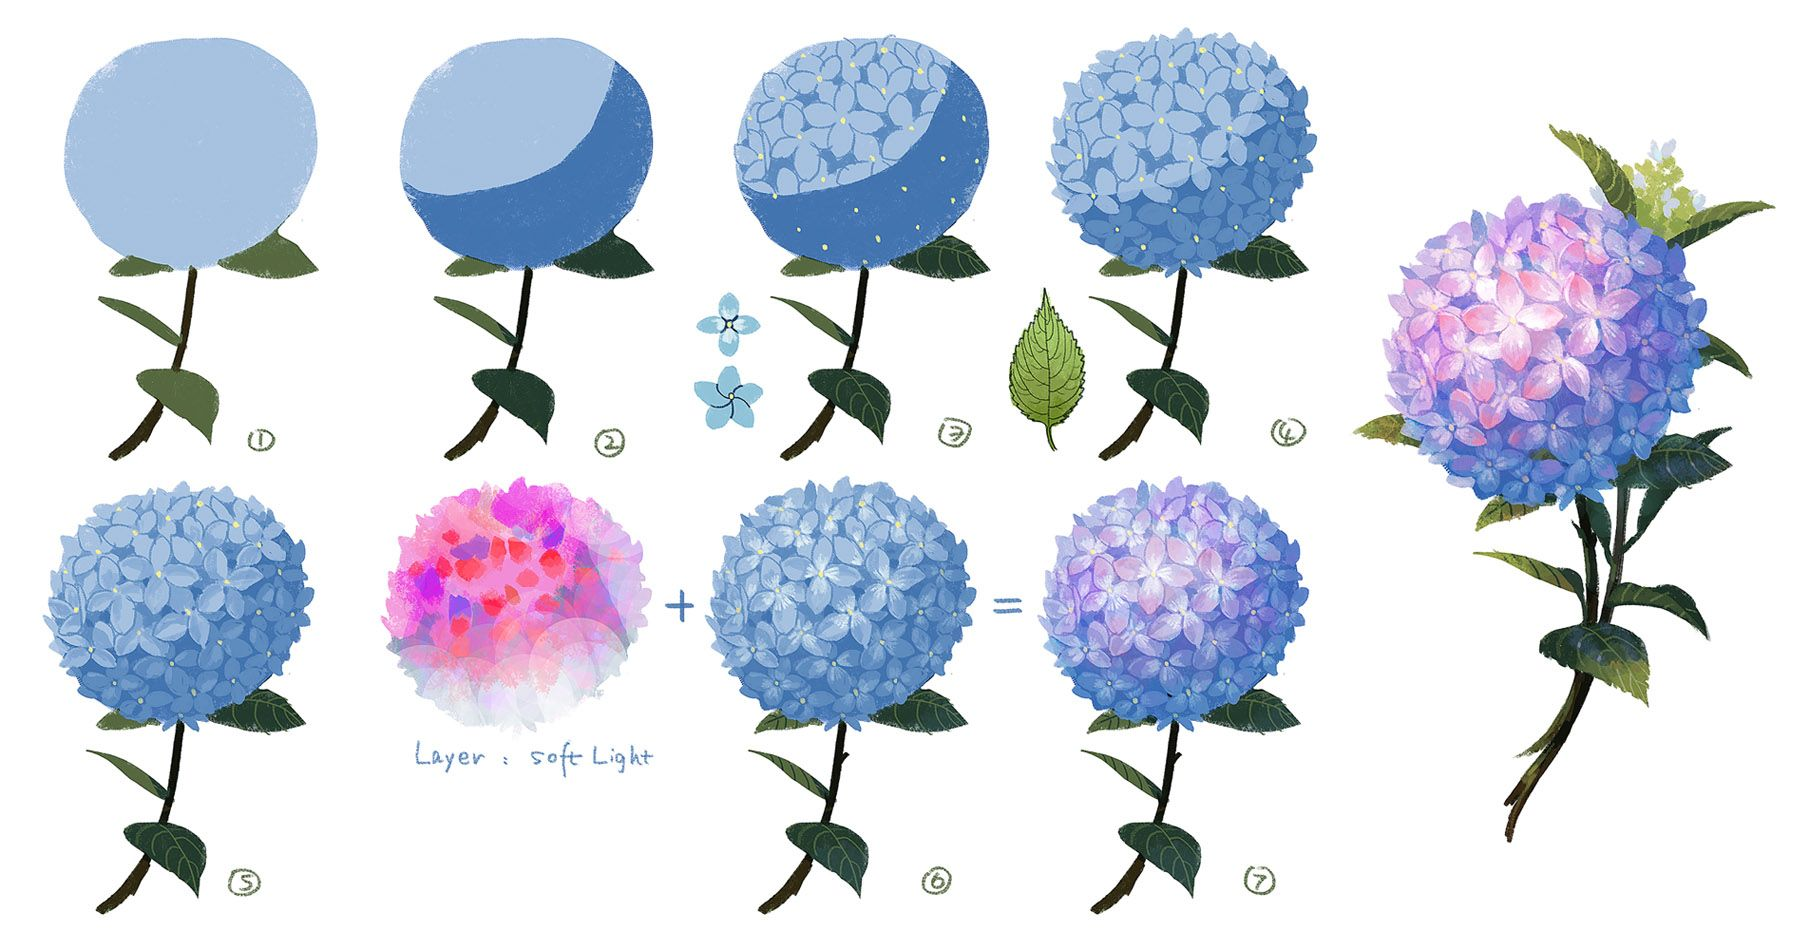 1000+ Images About Flores On Pinterest  Lilies, Hydrangeas And Rose  Tutorial